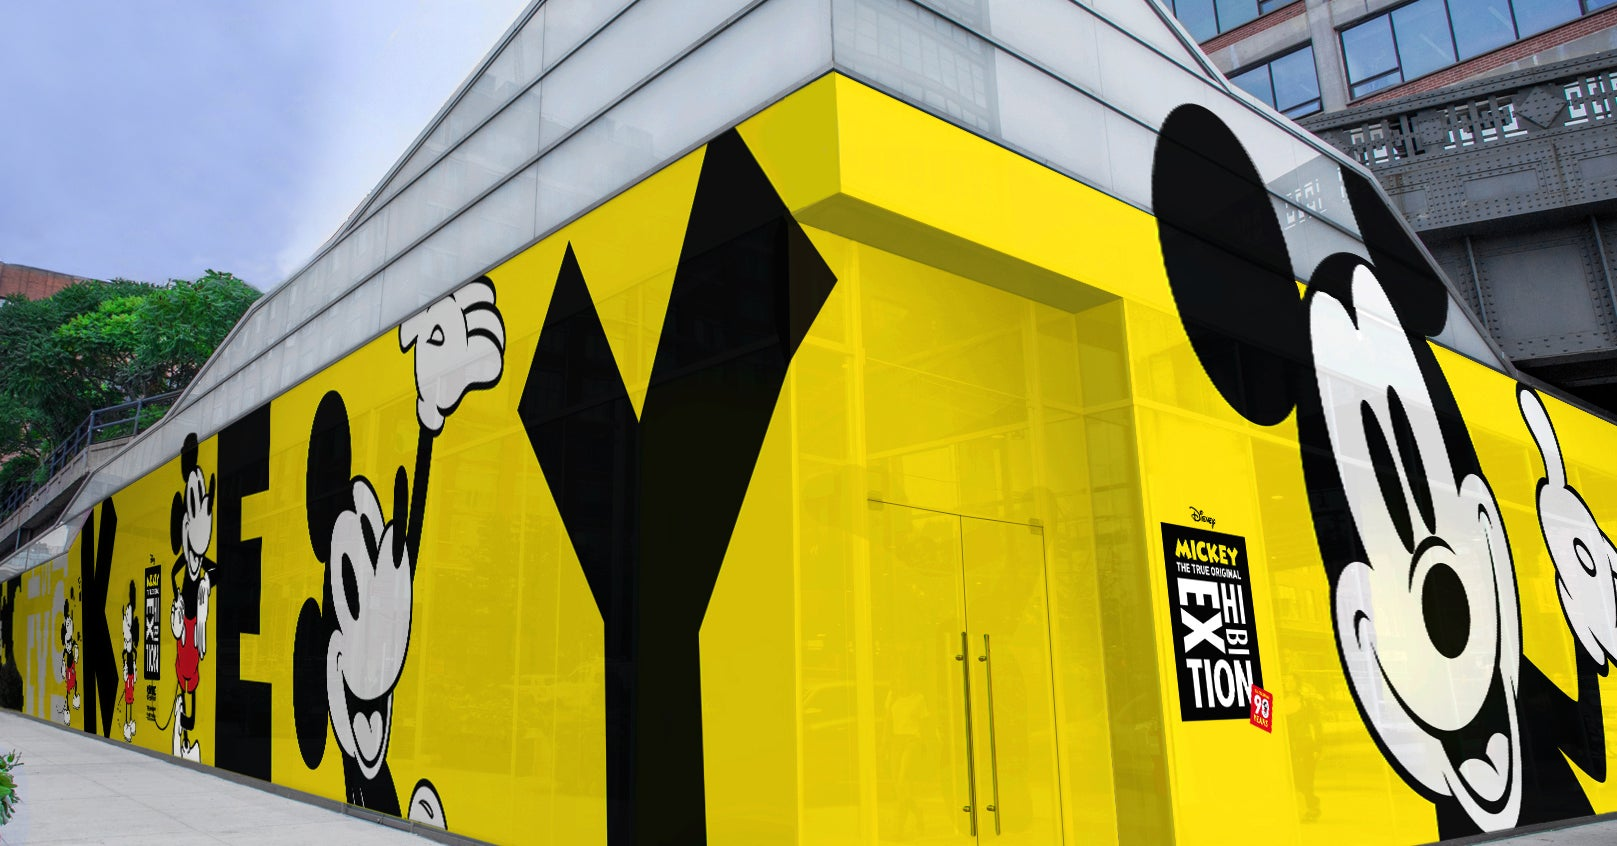 Attention Disney Fans: An Immersive Mickey Mouse Pop-Up Exhibit Is Coming To NYC